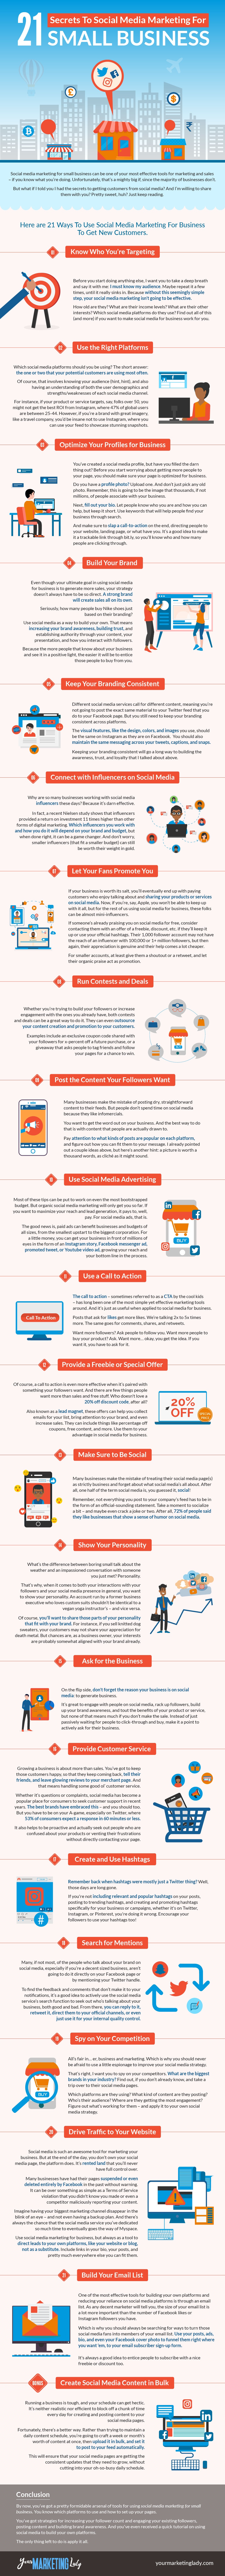 Infographic: 21 Secrets To Social Media Marketing